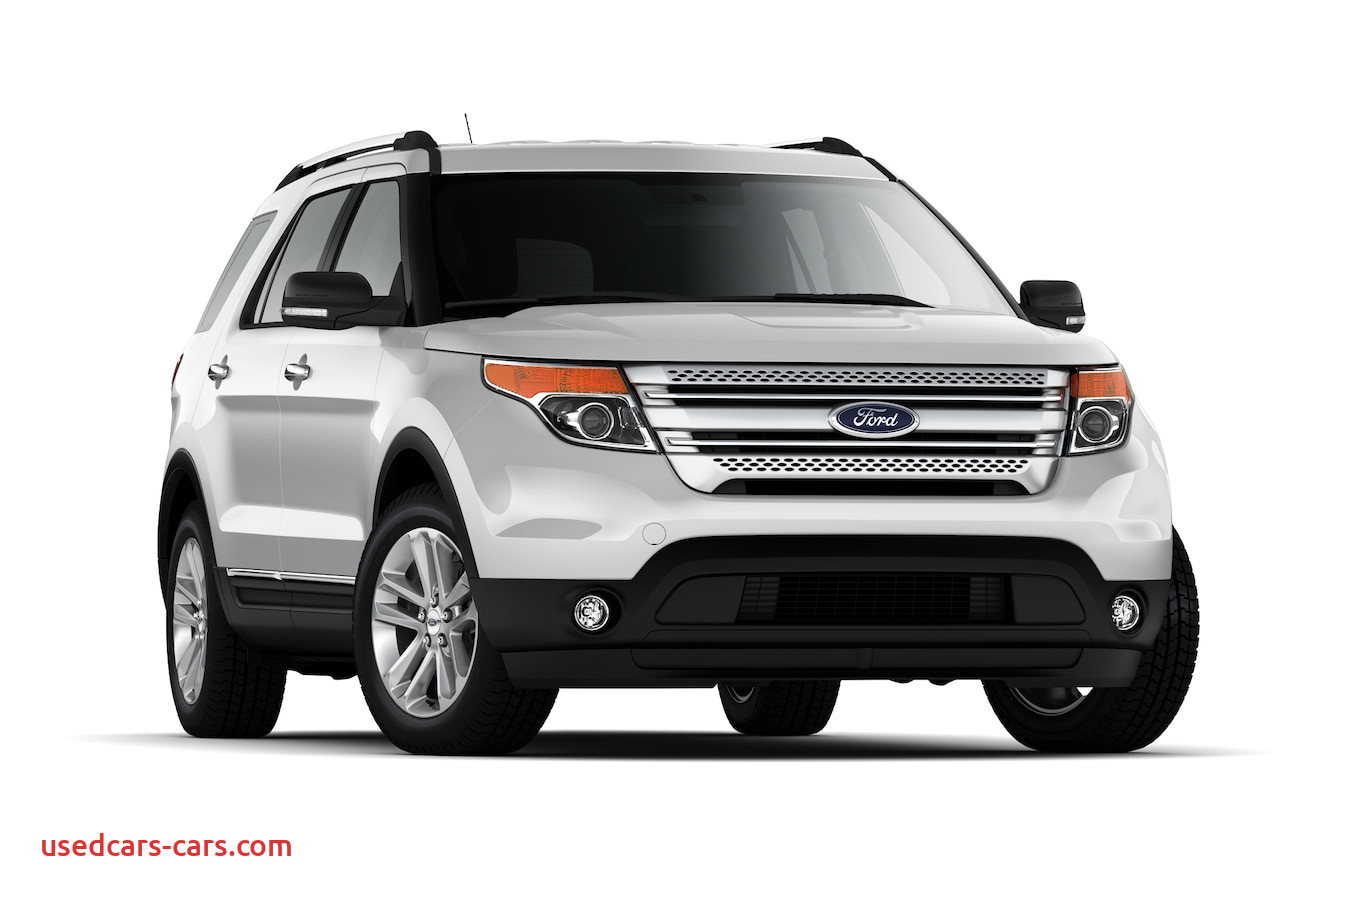 Ford Explorer 2015 Spec New 2015 ford Explorer Reviews Research Explorer Prices